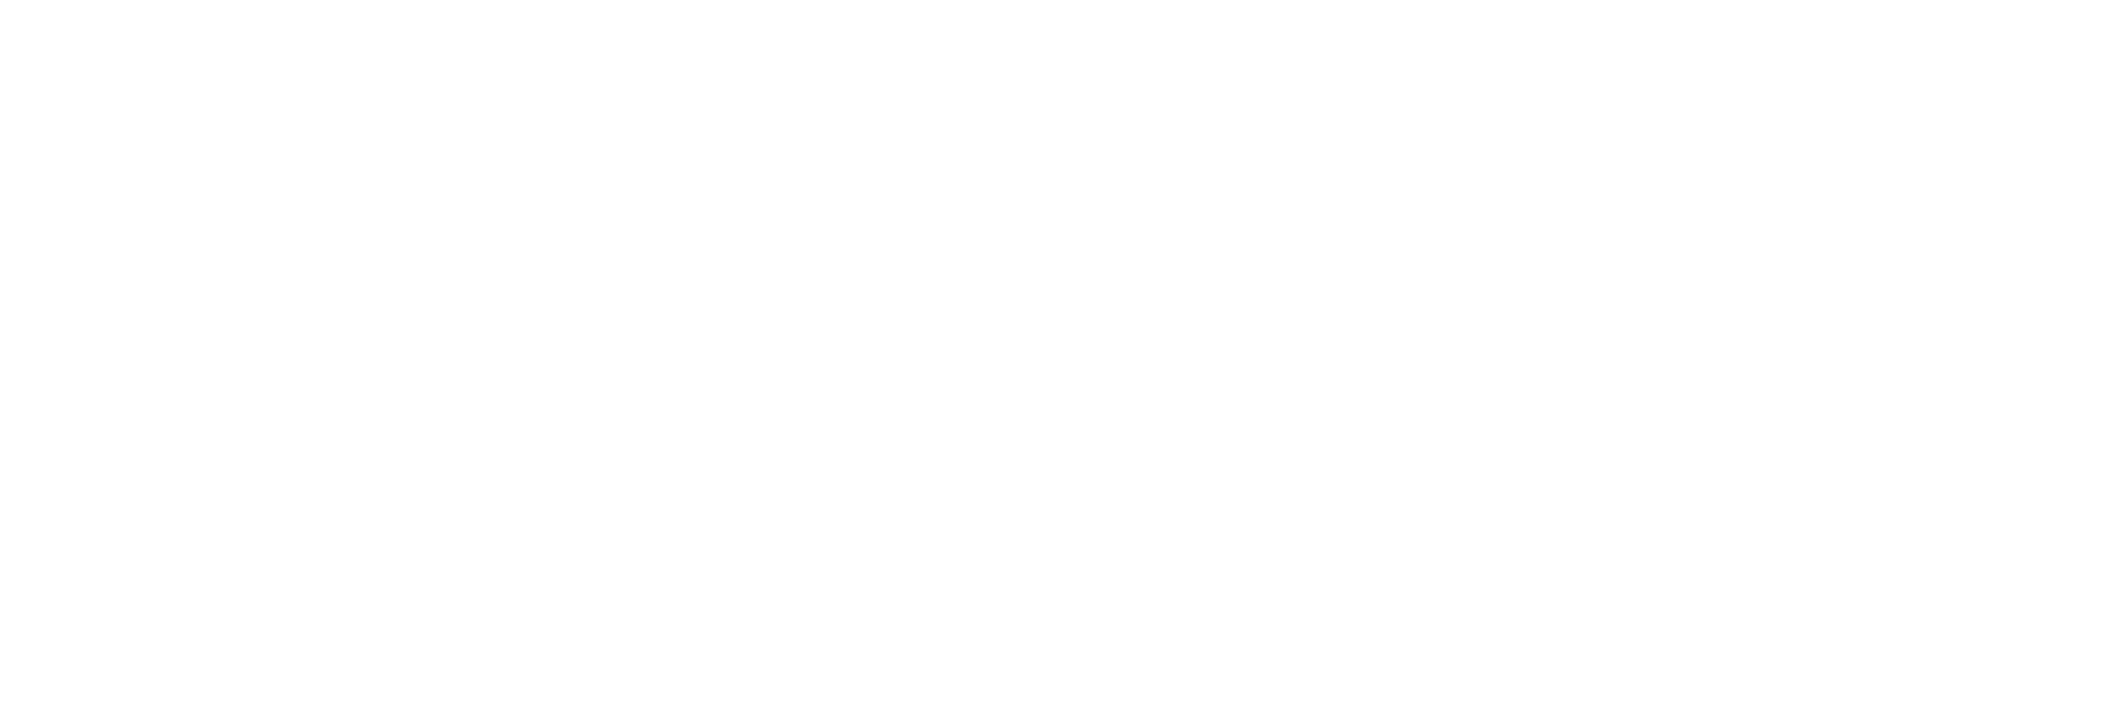 The Young Industries, Inc.